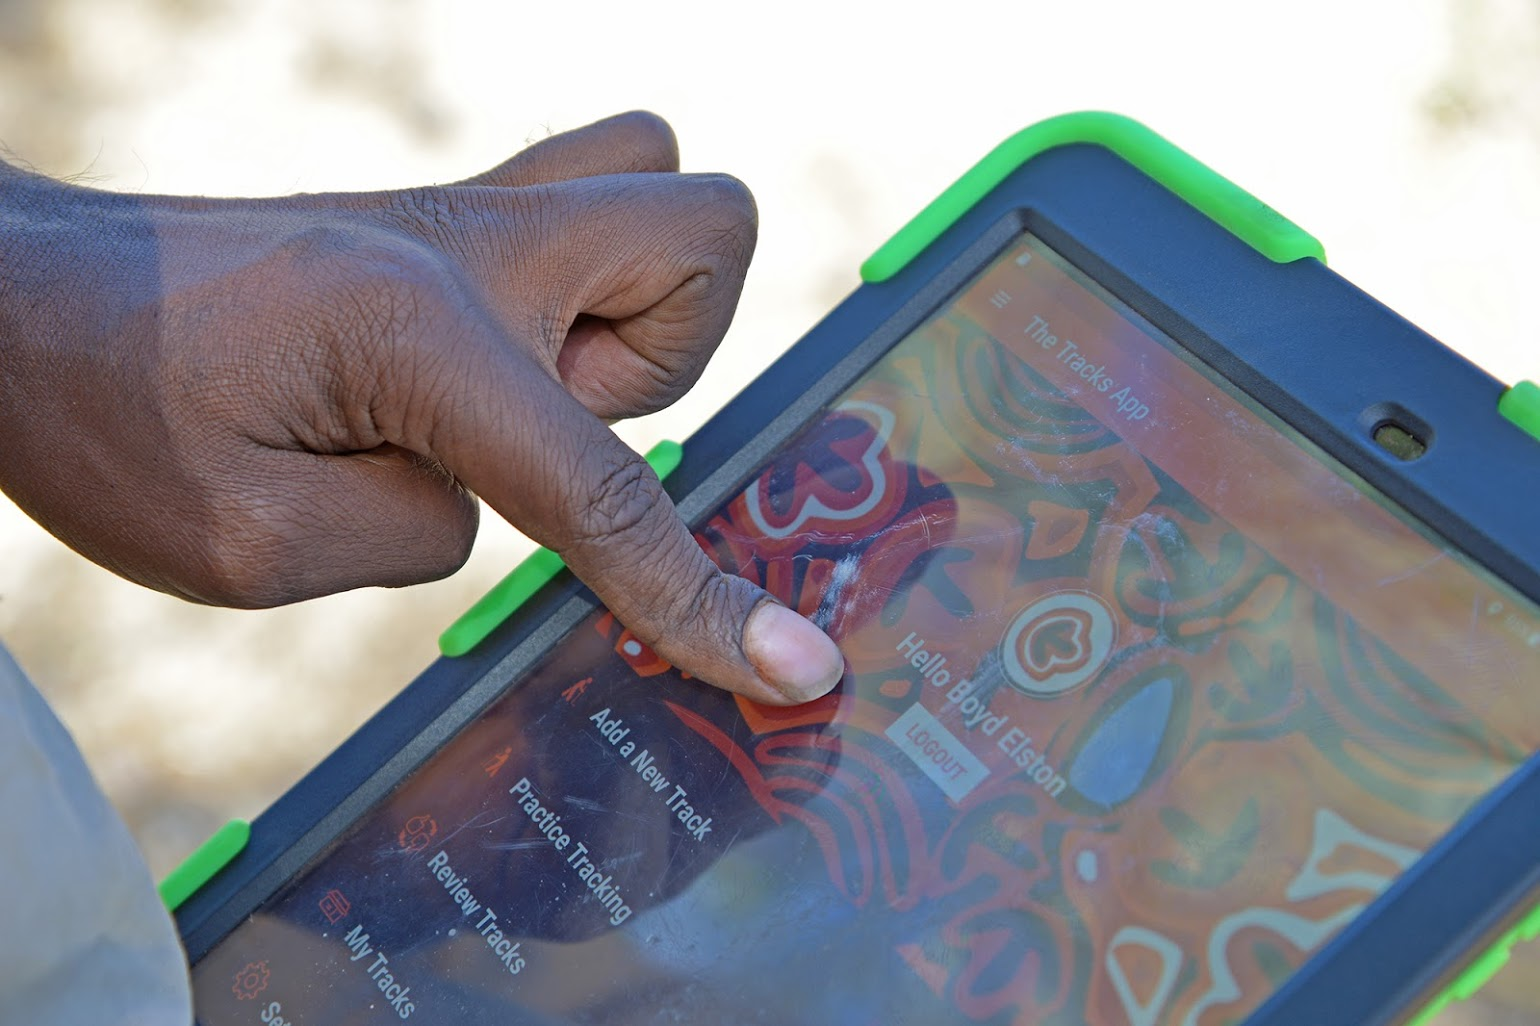 Image: The Tracks App: a bi-lingual mobile app exploring biodiversity in an indigenous context